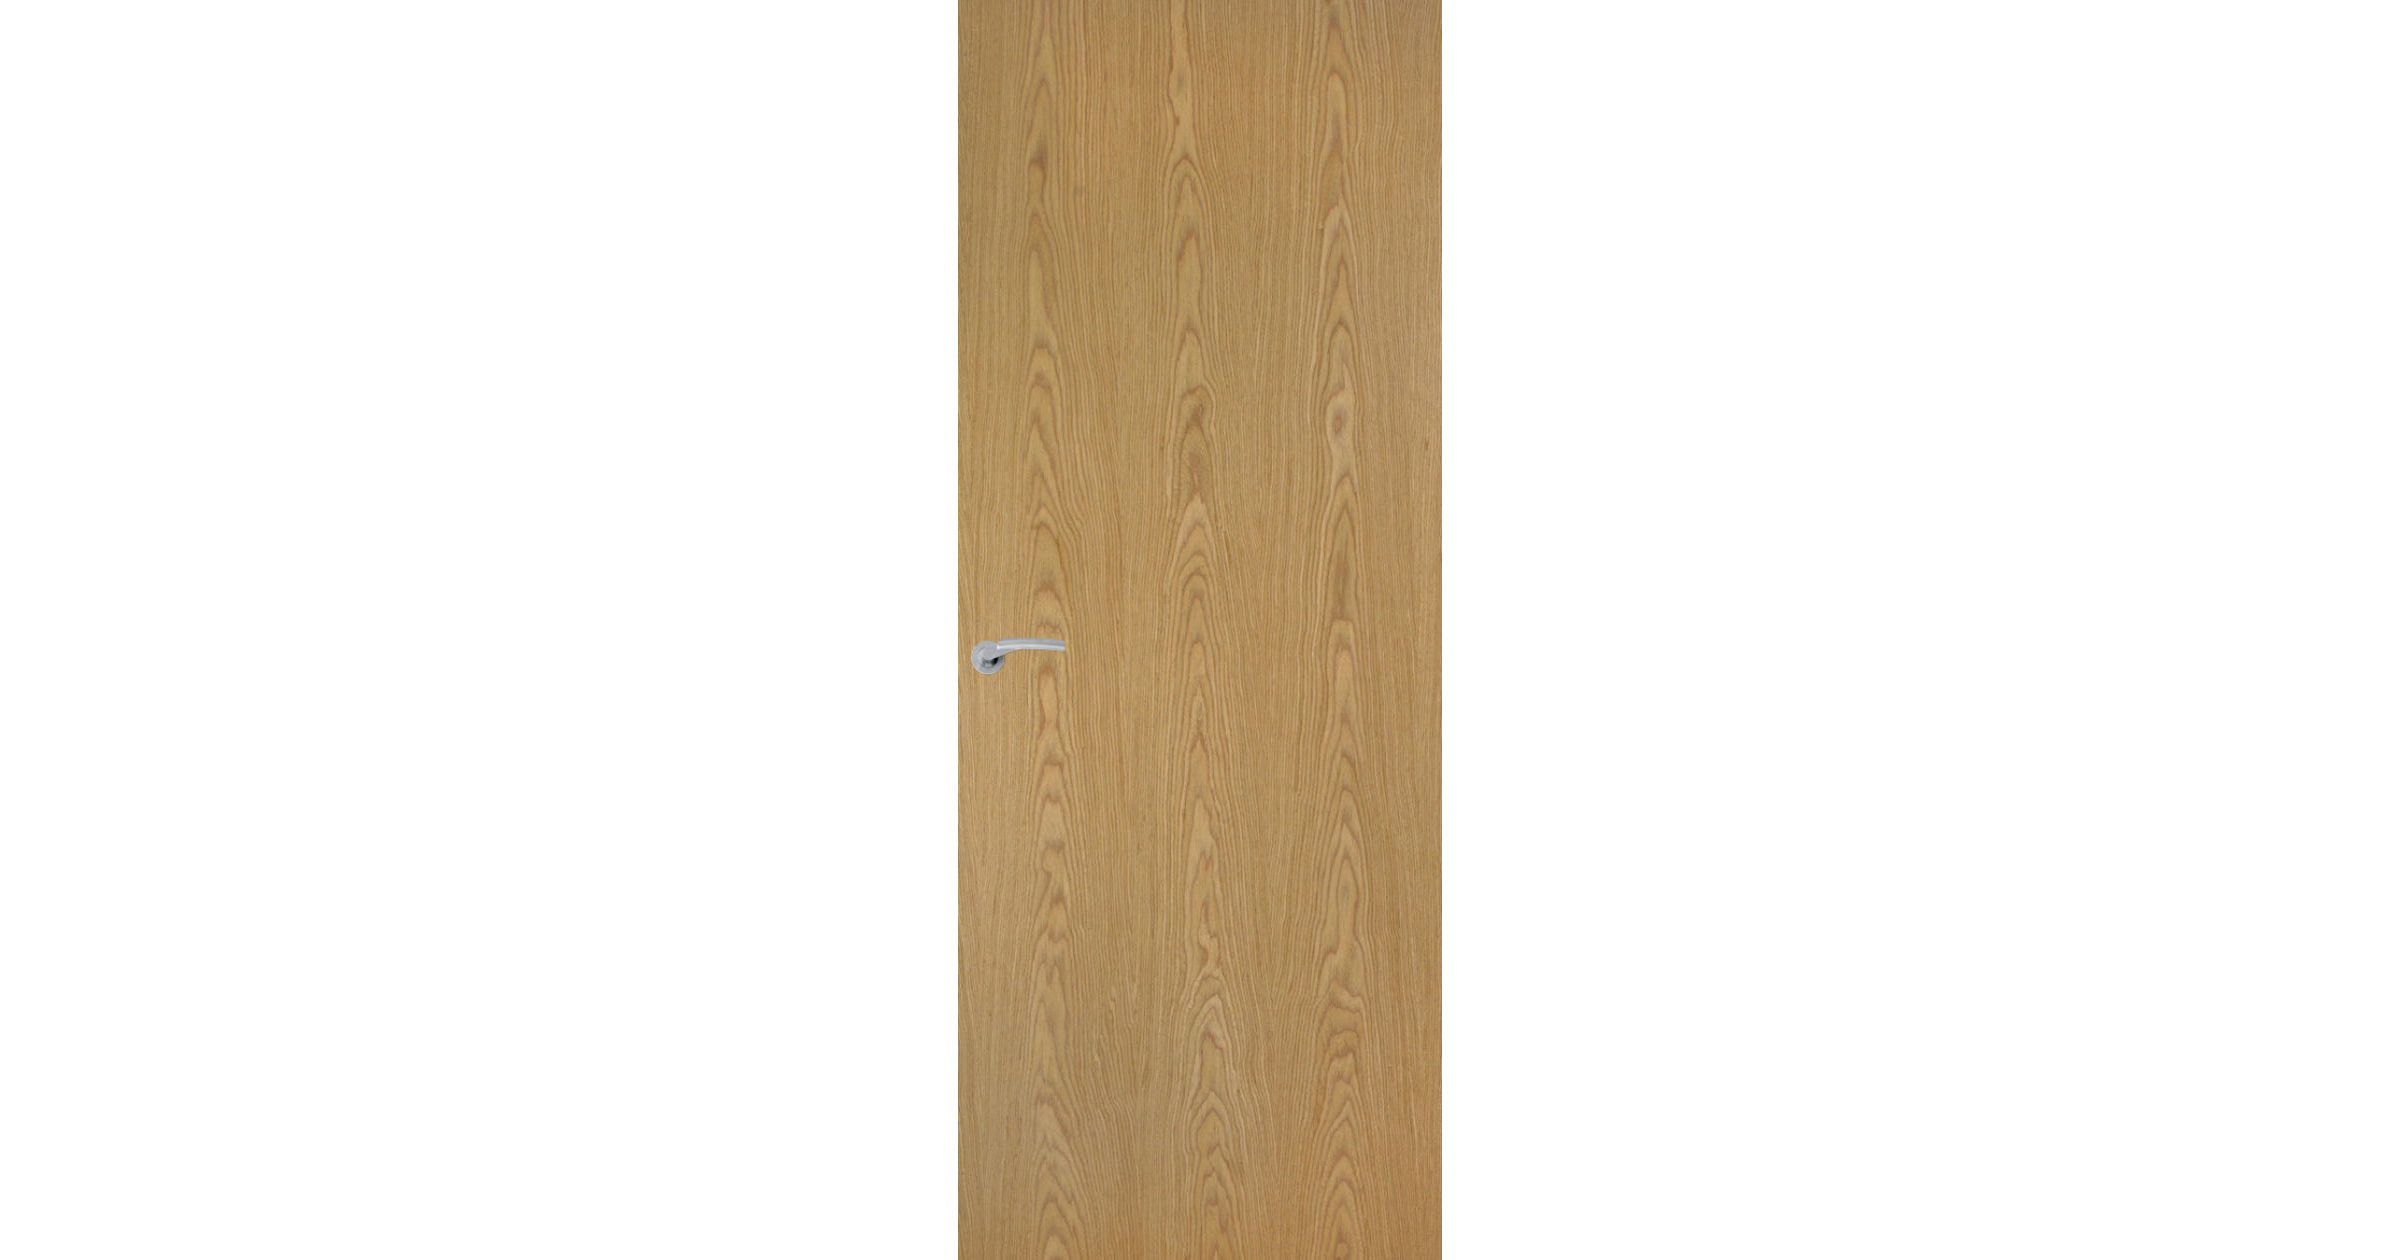 Oak Fireshield FD30 Fire Door